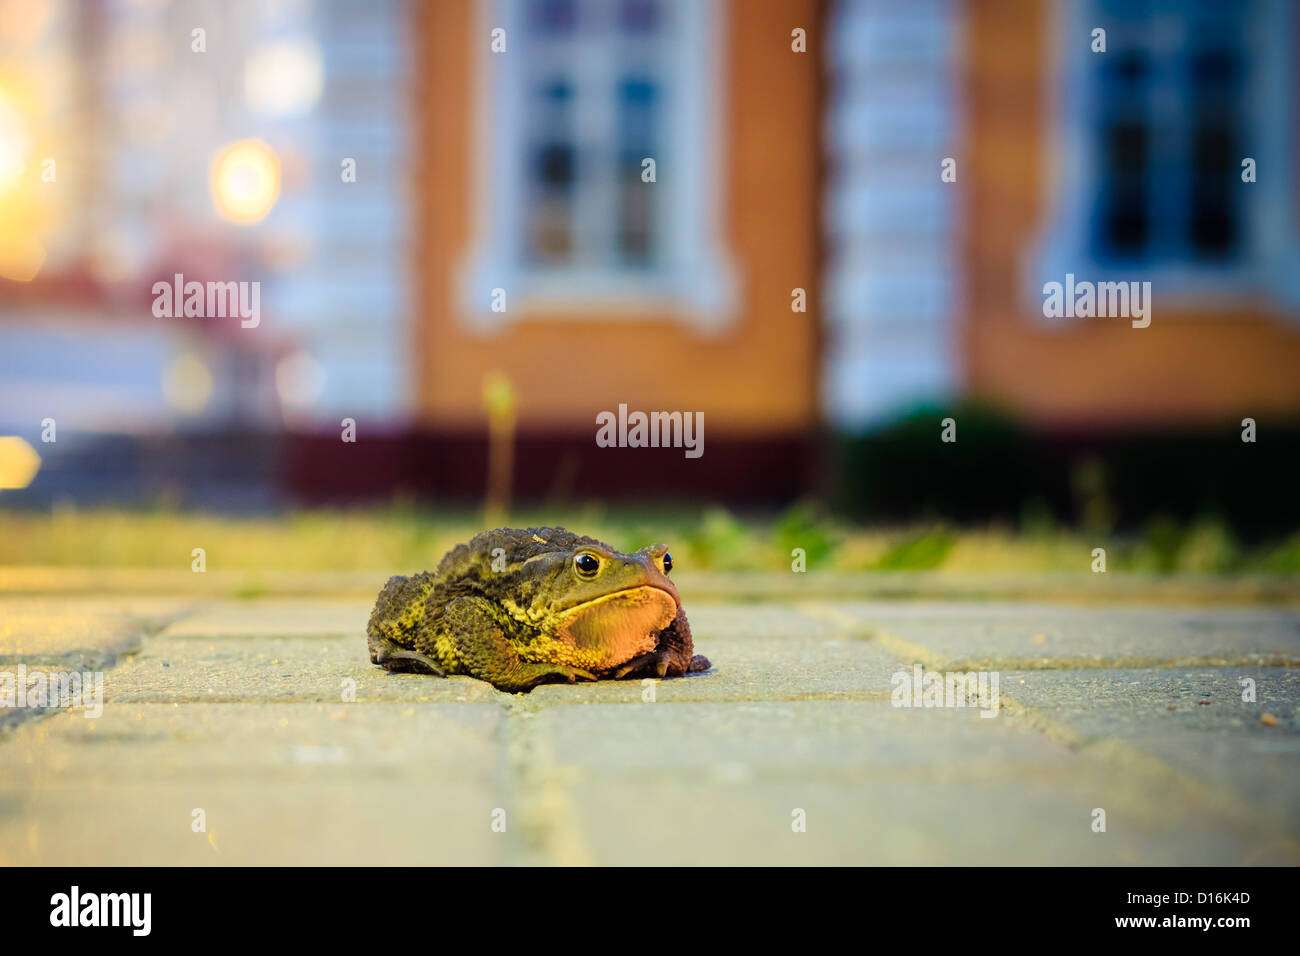 Close up du crapaud dans la nuit Photo Stock